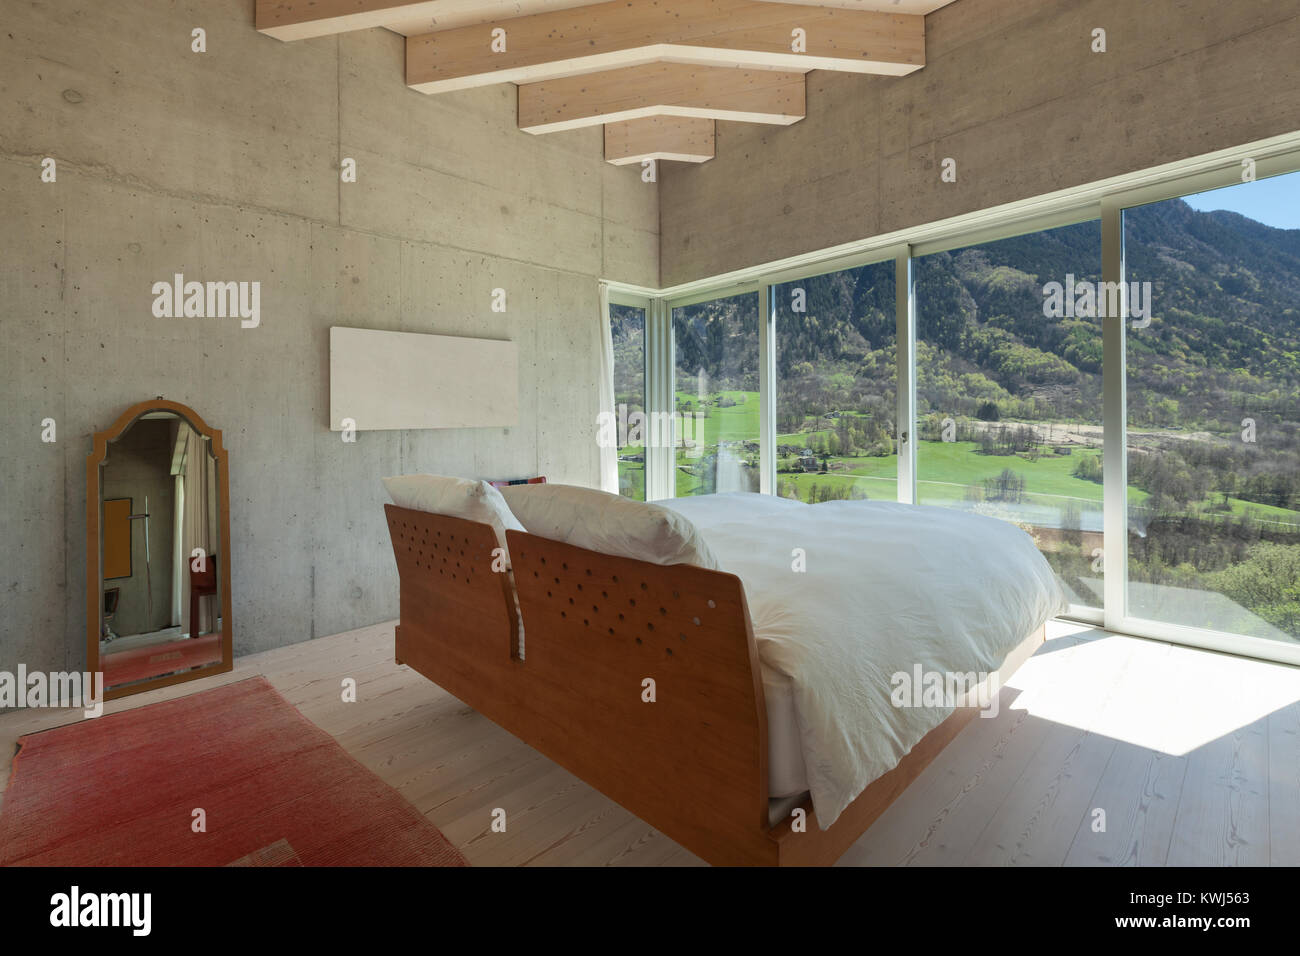 Interior of a modern chalet in cement hob of kitchen stock photo